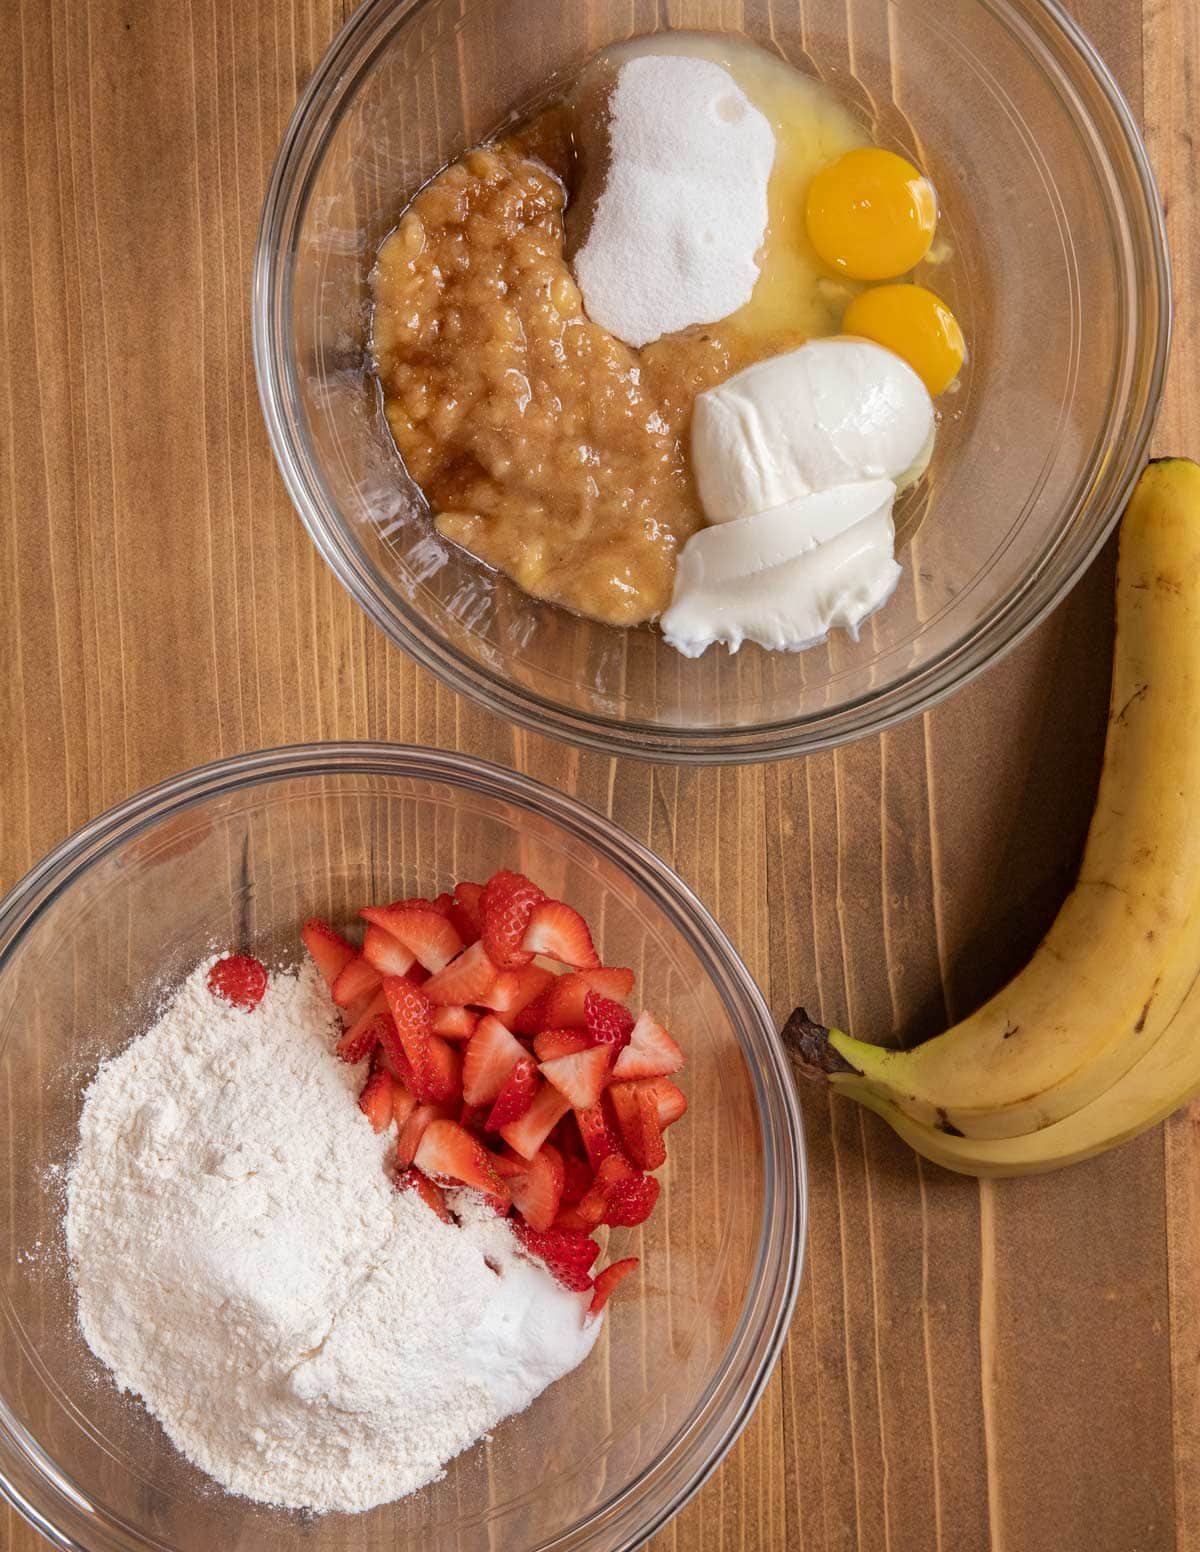 Strawberry Banana Bread ingredients in glass bowls